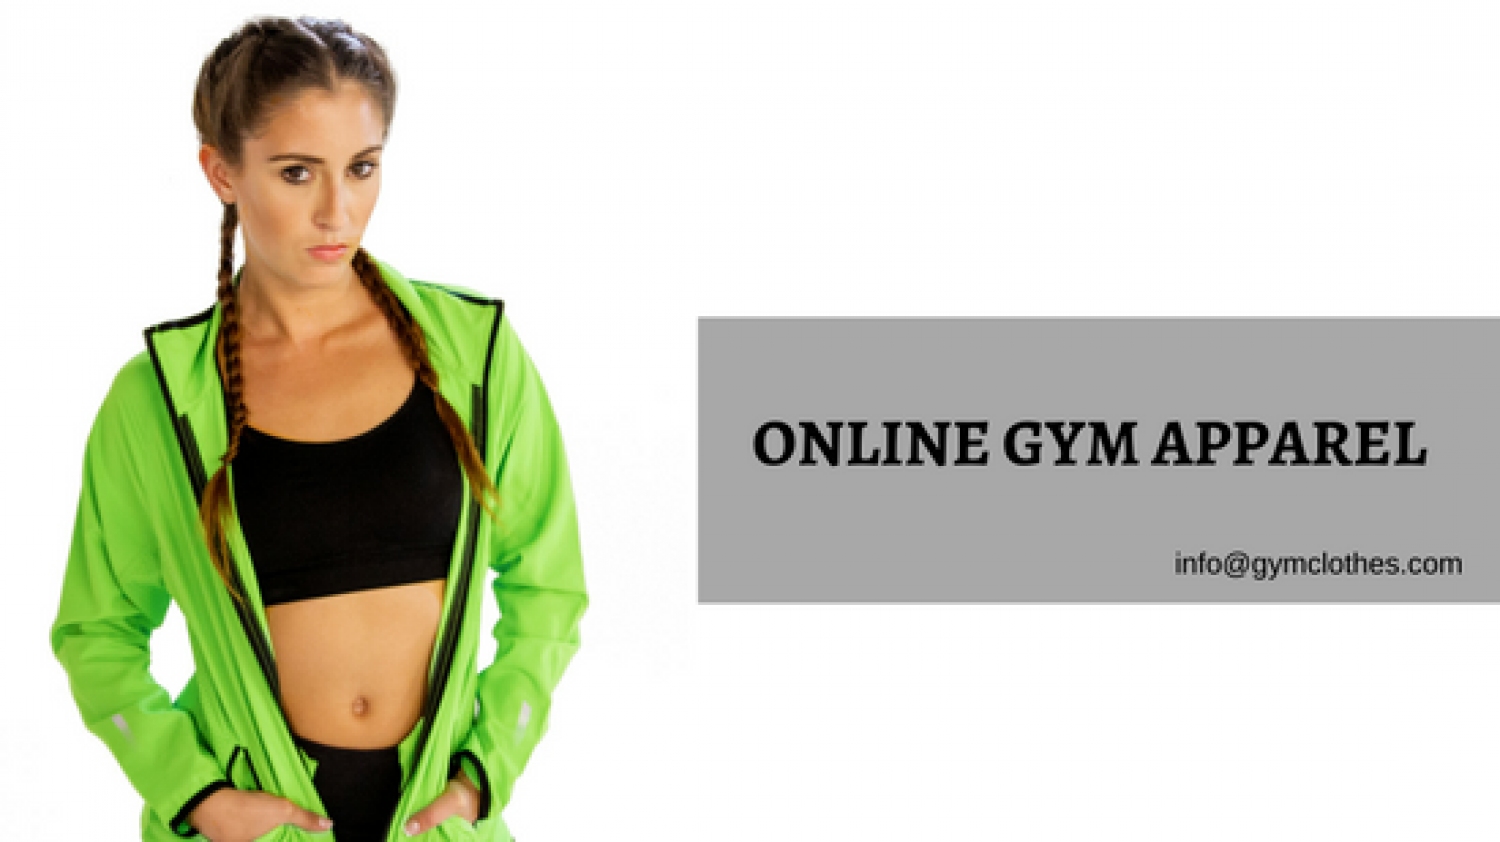 Make a Worthy Purchase Of Online Gym Apparel From Gym Clothes  Infographic